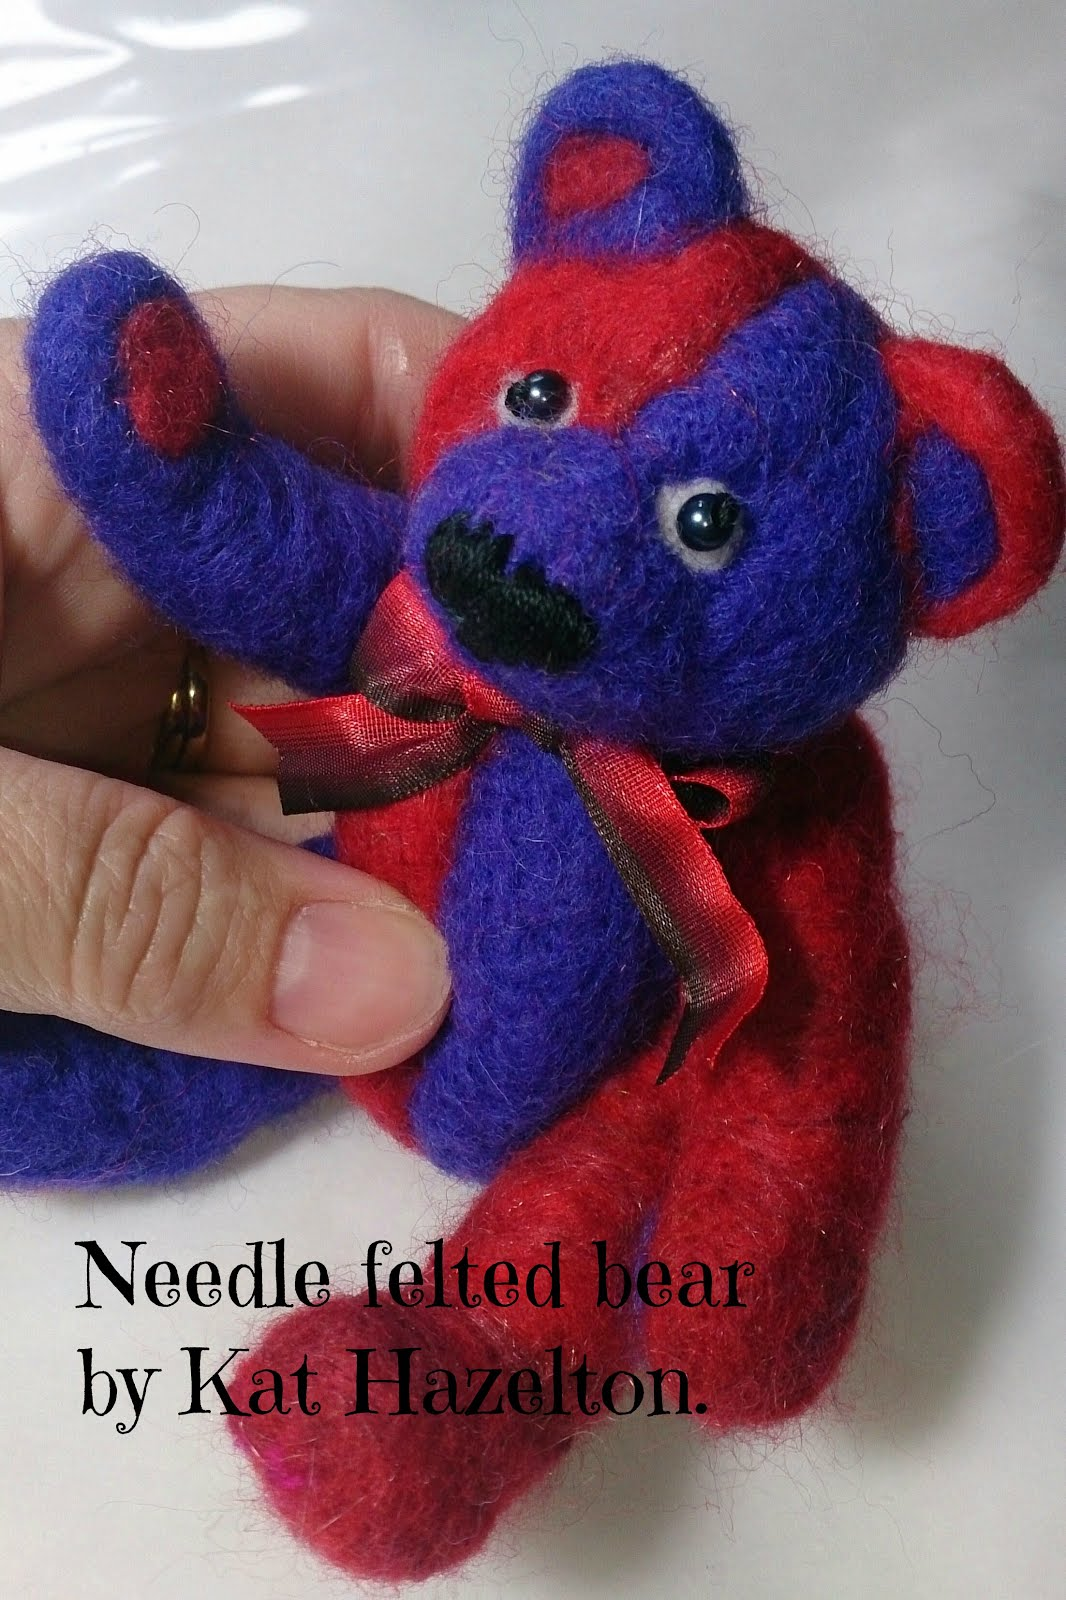 One of my needle felted bears